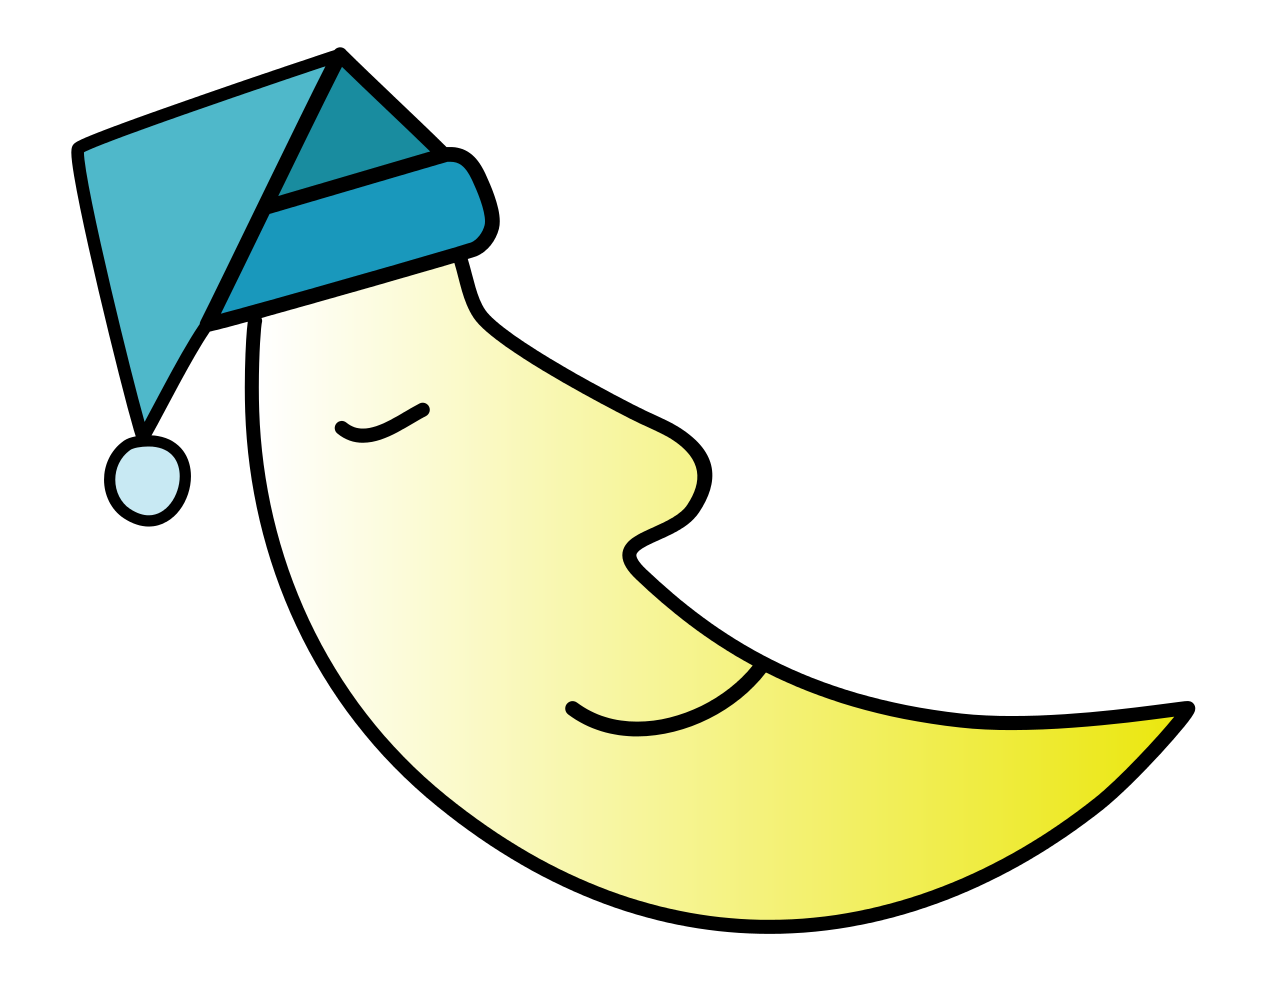 Sleep clipart png. File svg wikimedia commons